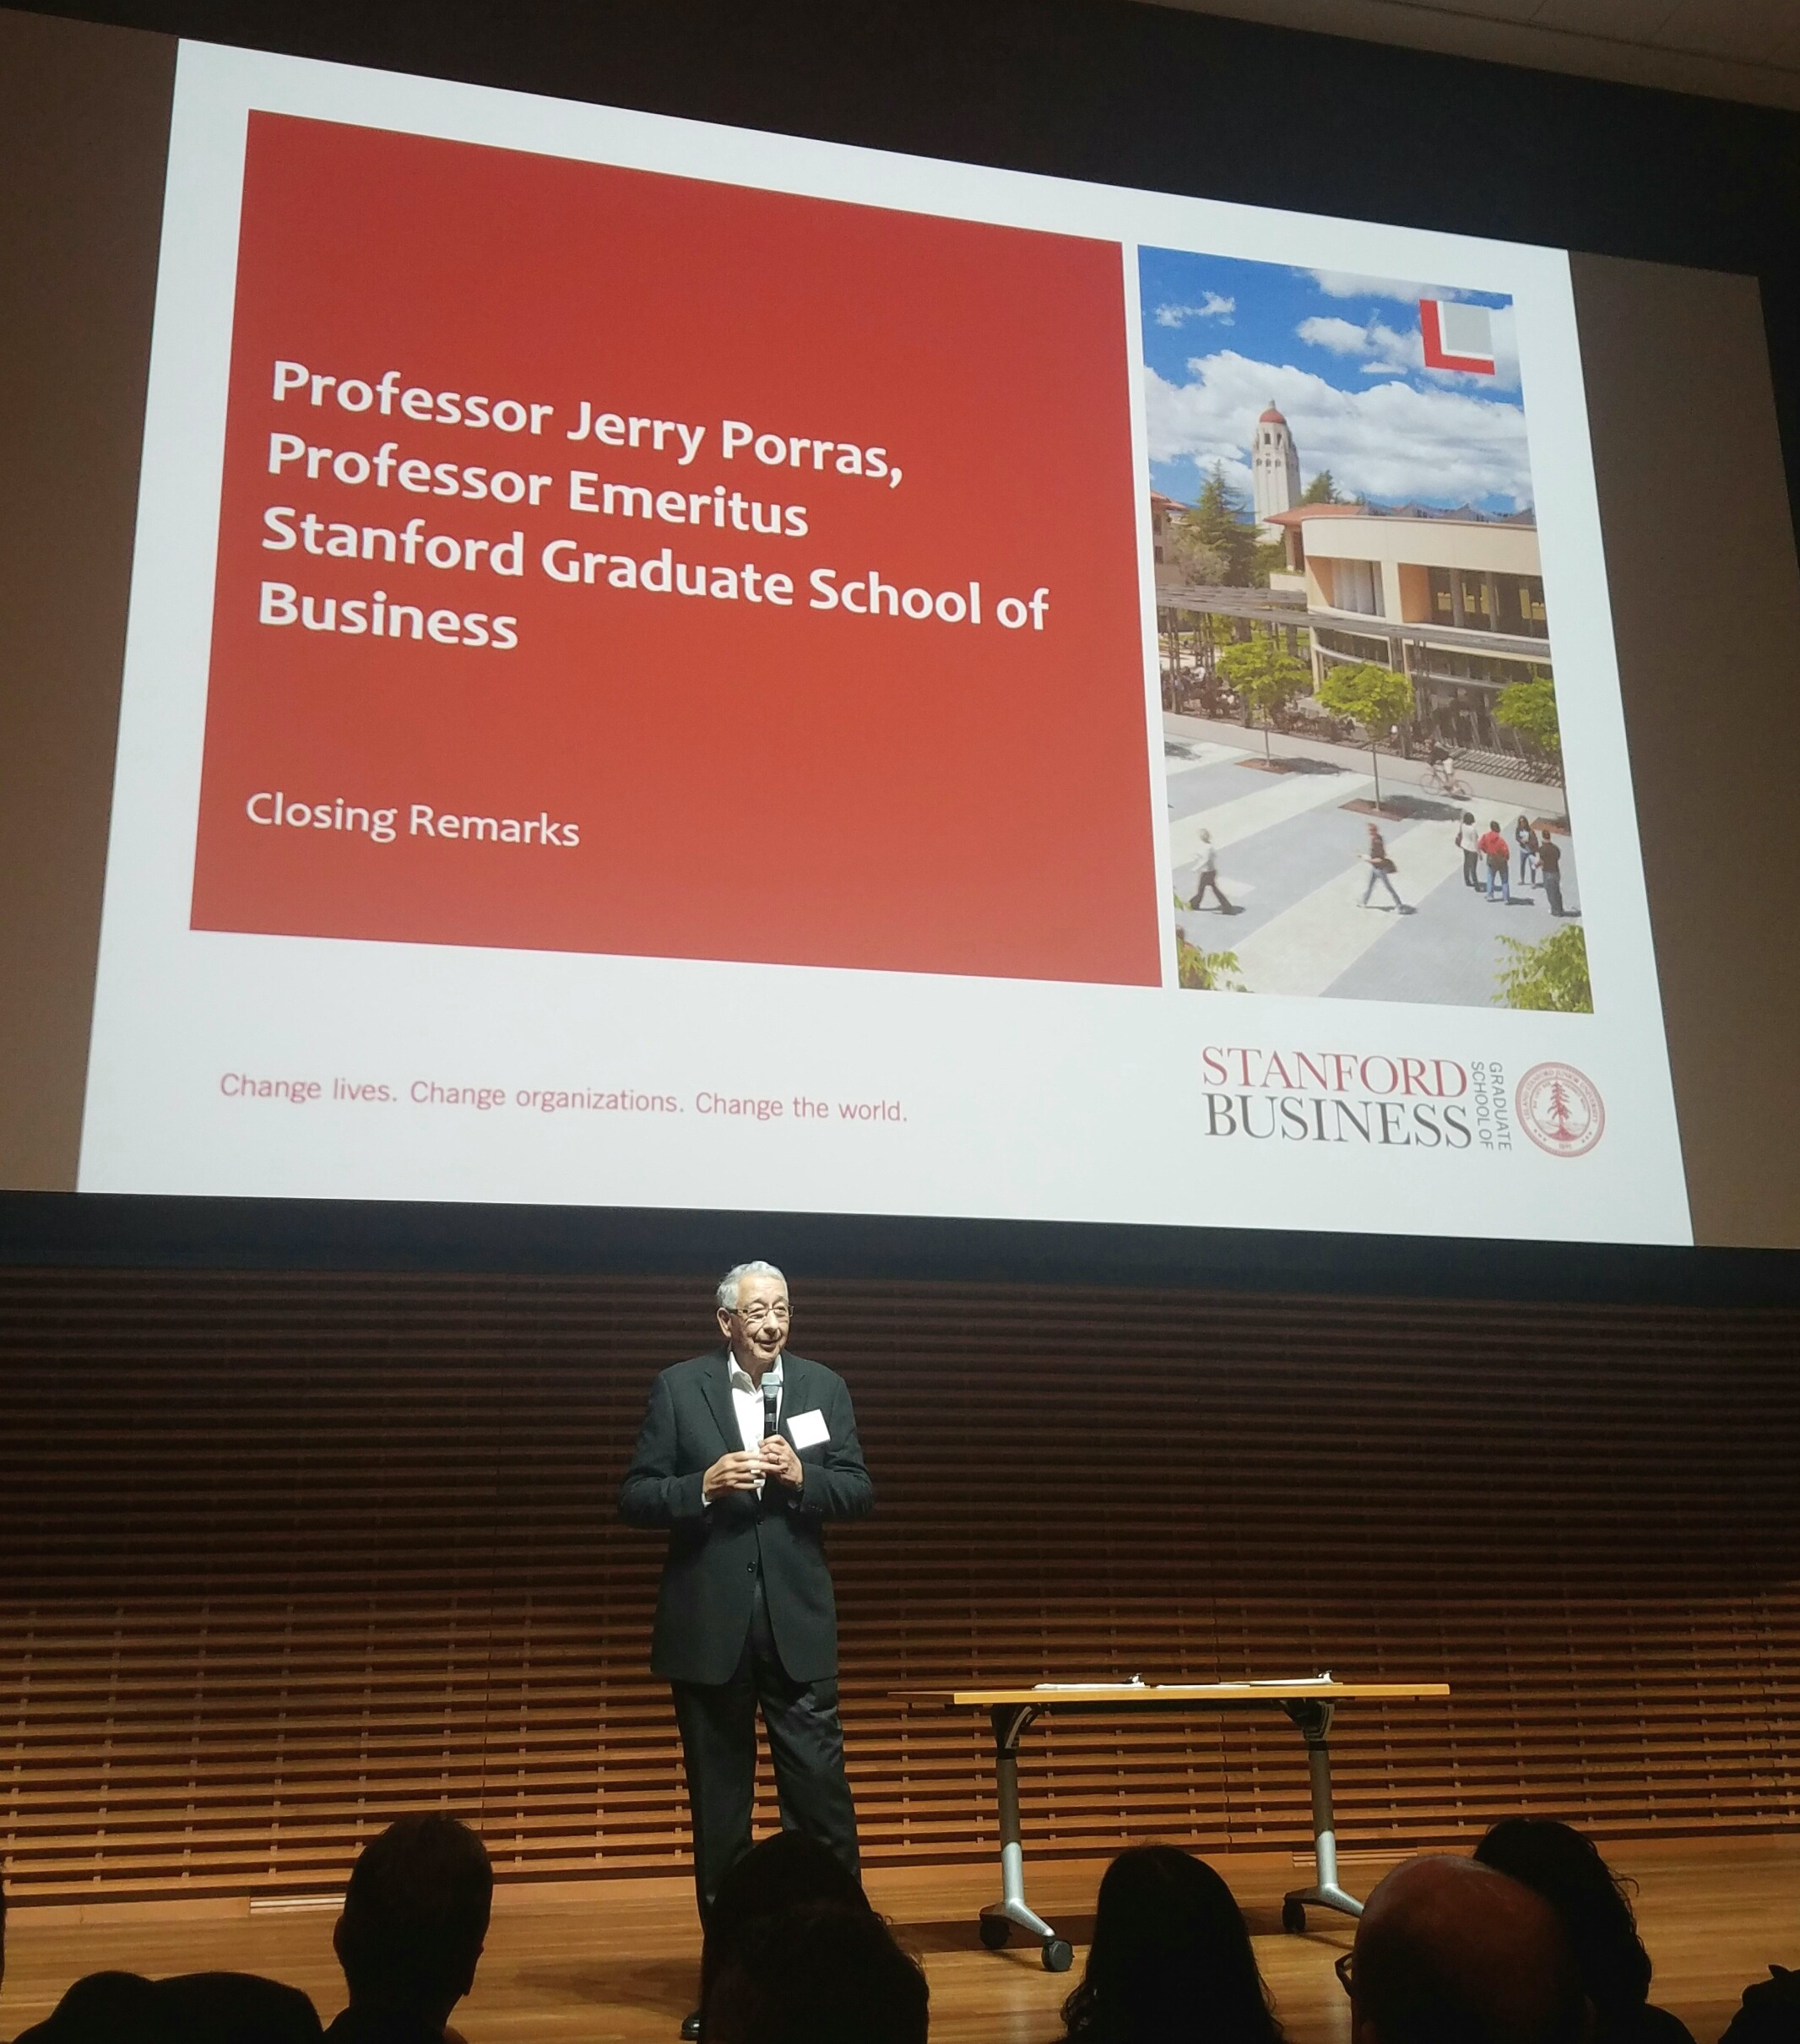 Jerry Porras, Professor Emeritus at Stanford Graduate School of Business